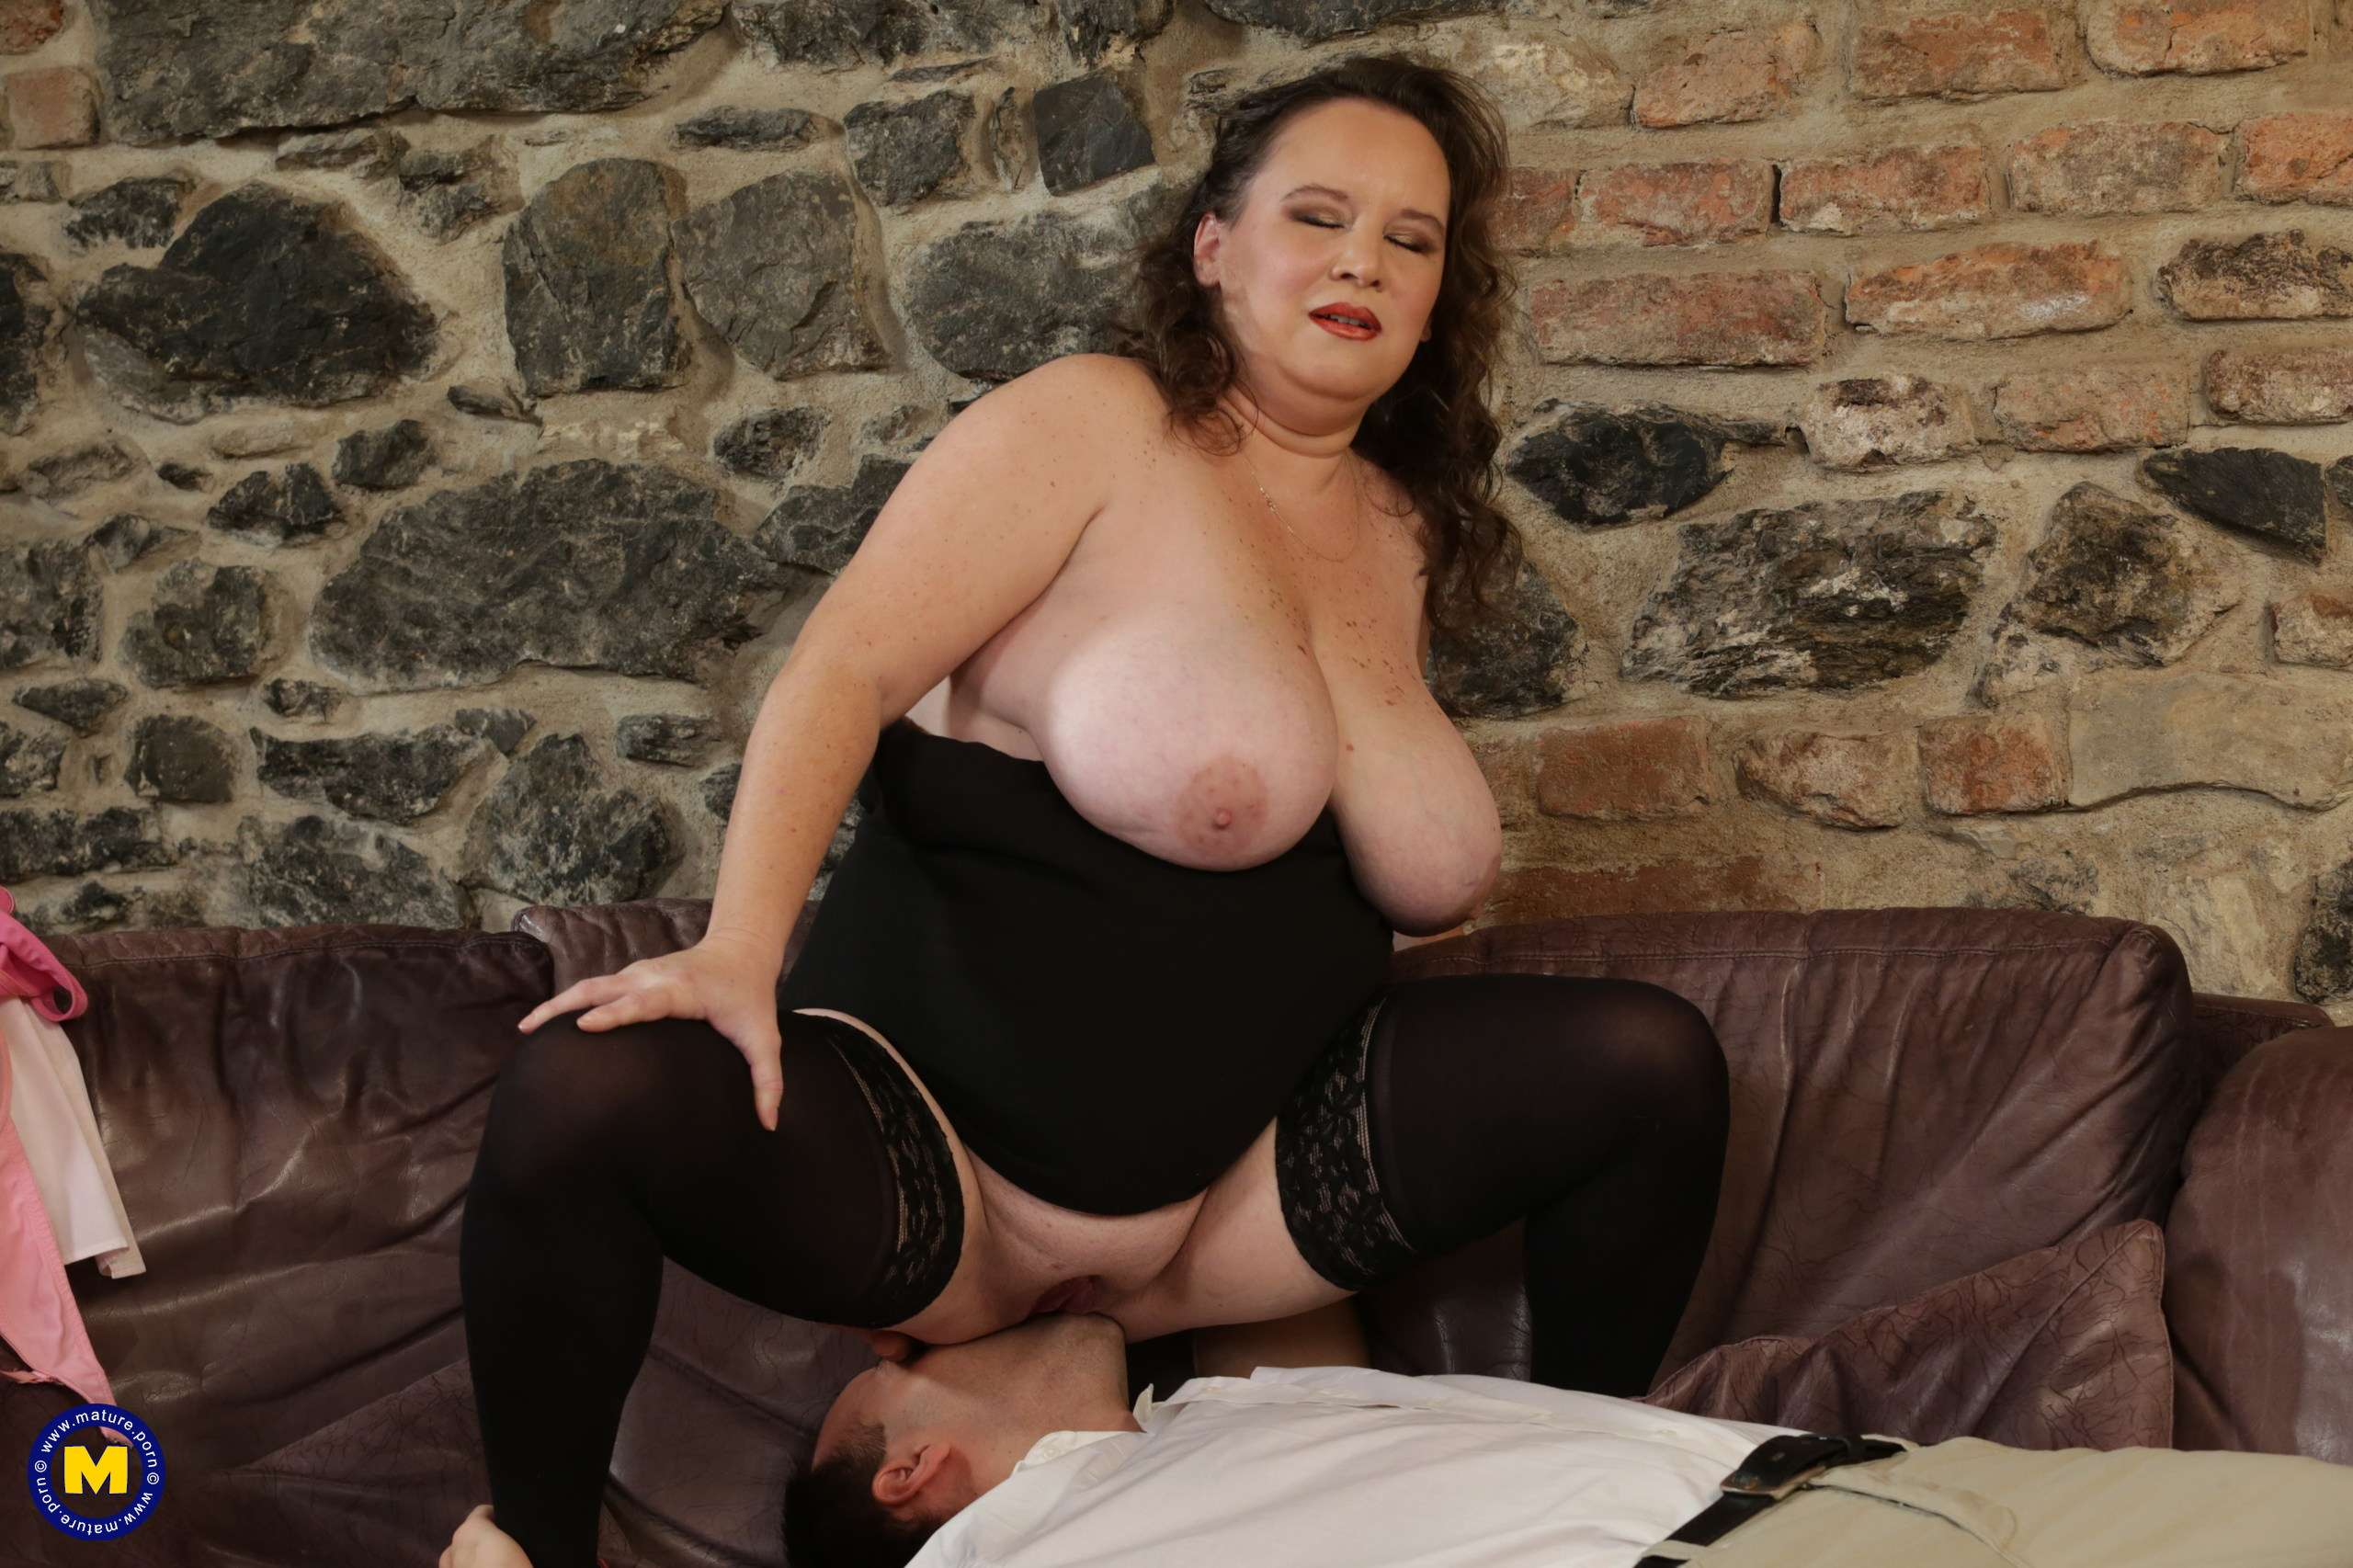 Curvy mature lady having fun with her toy boy